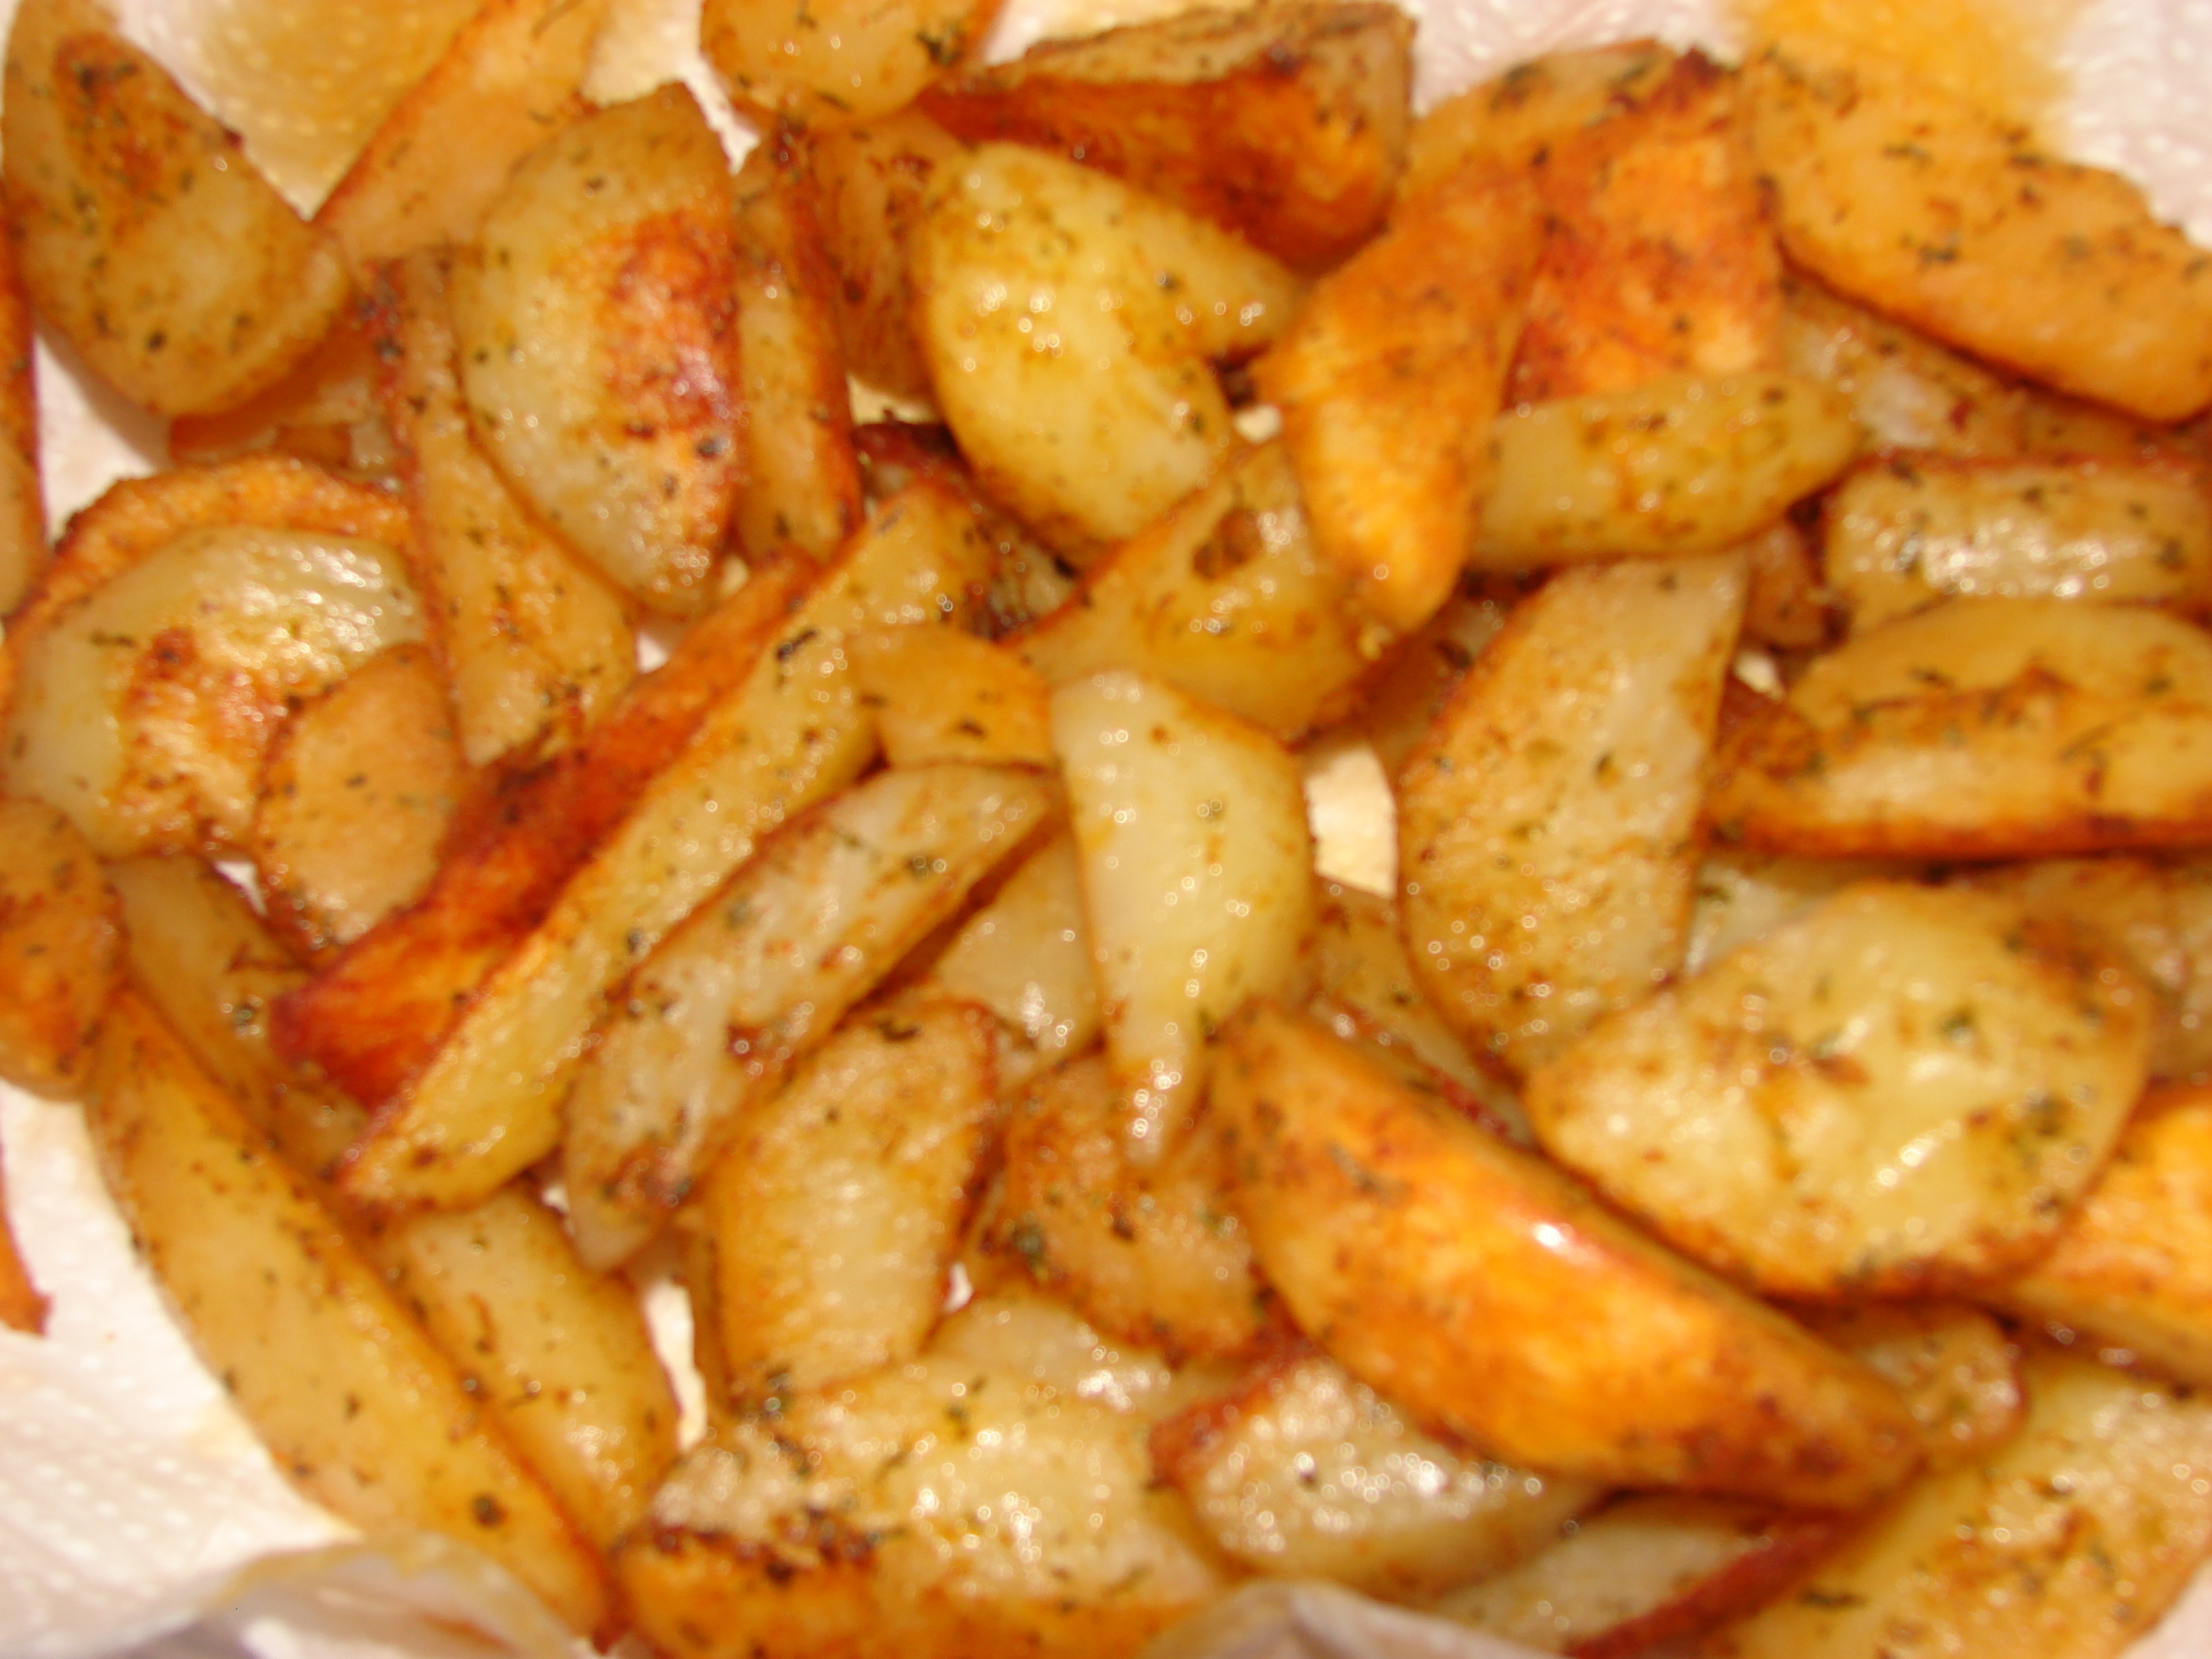 Voila! Spicy potatoes.